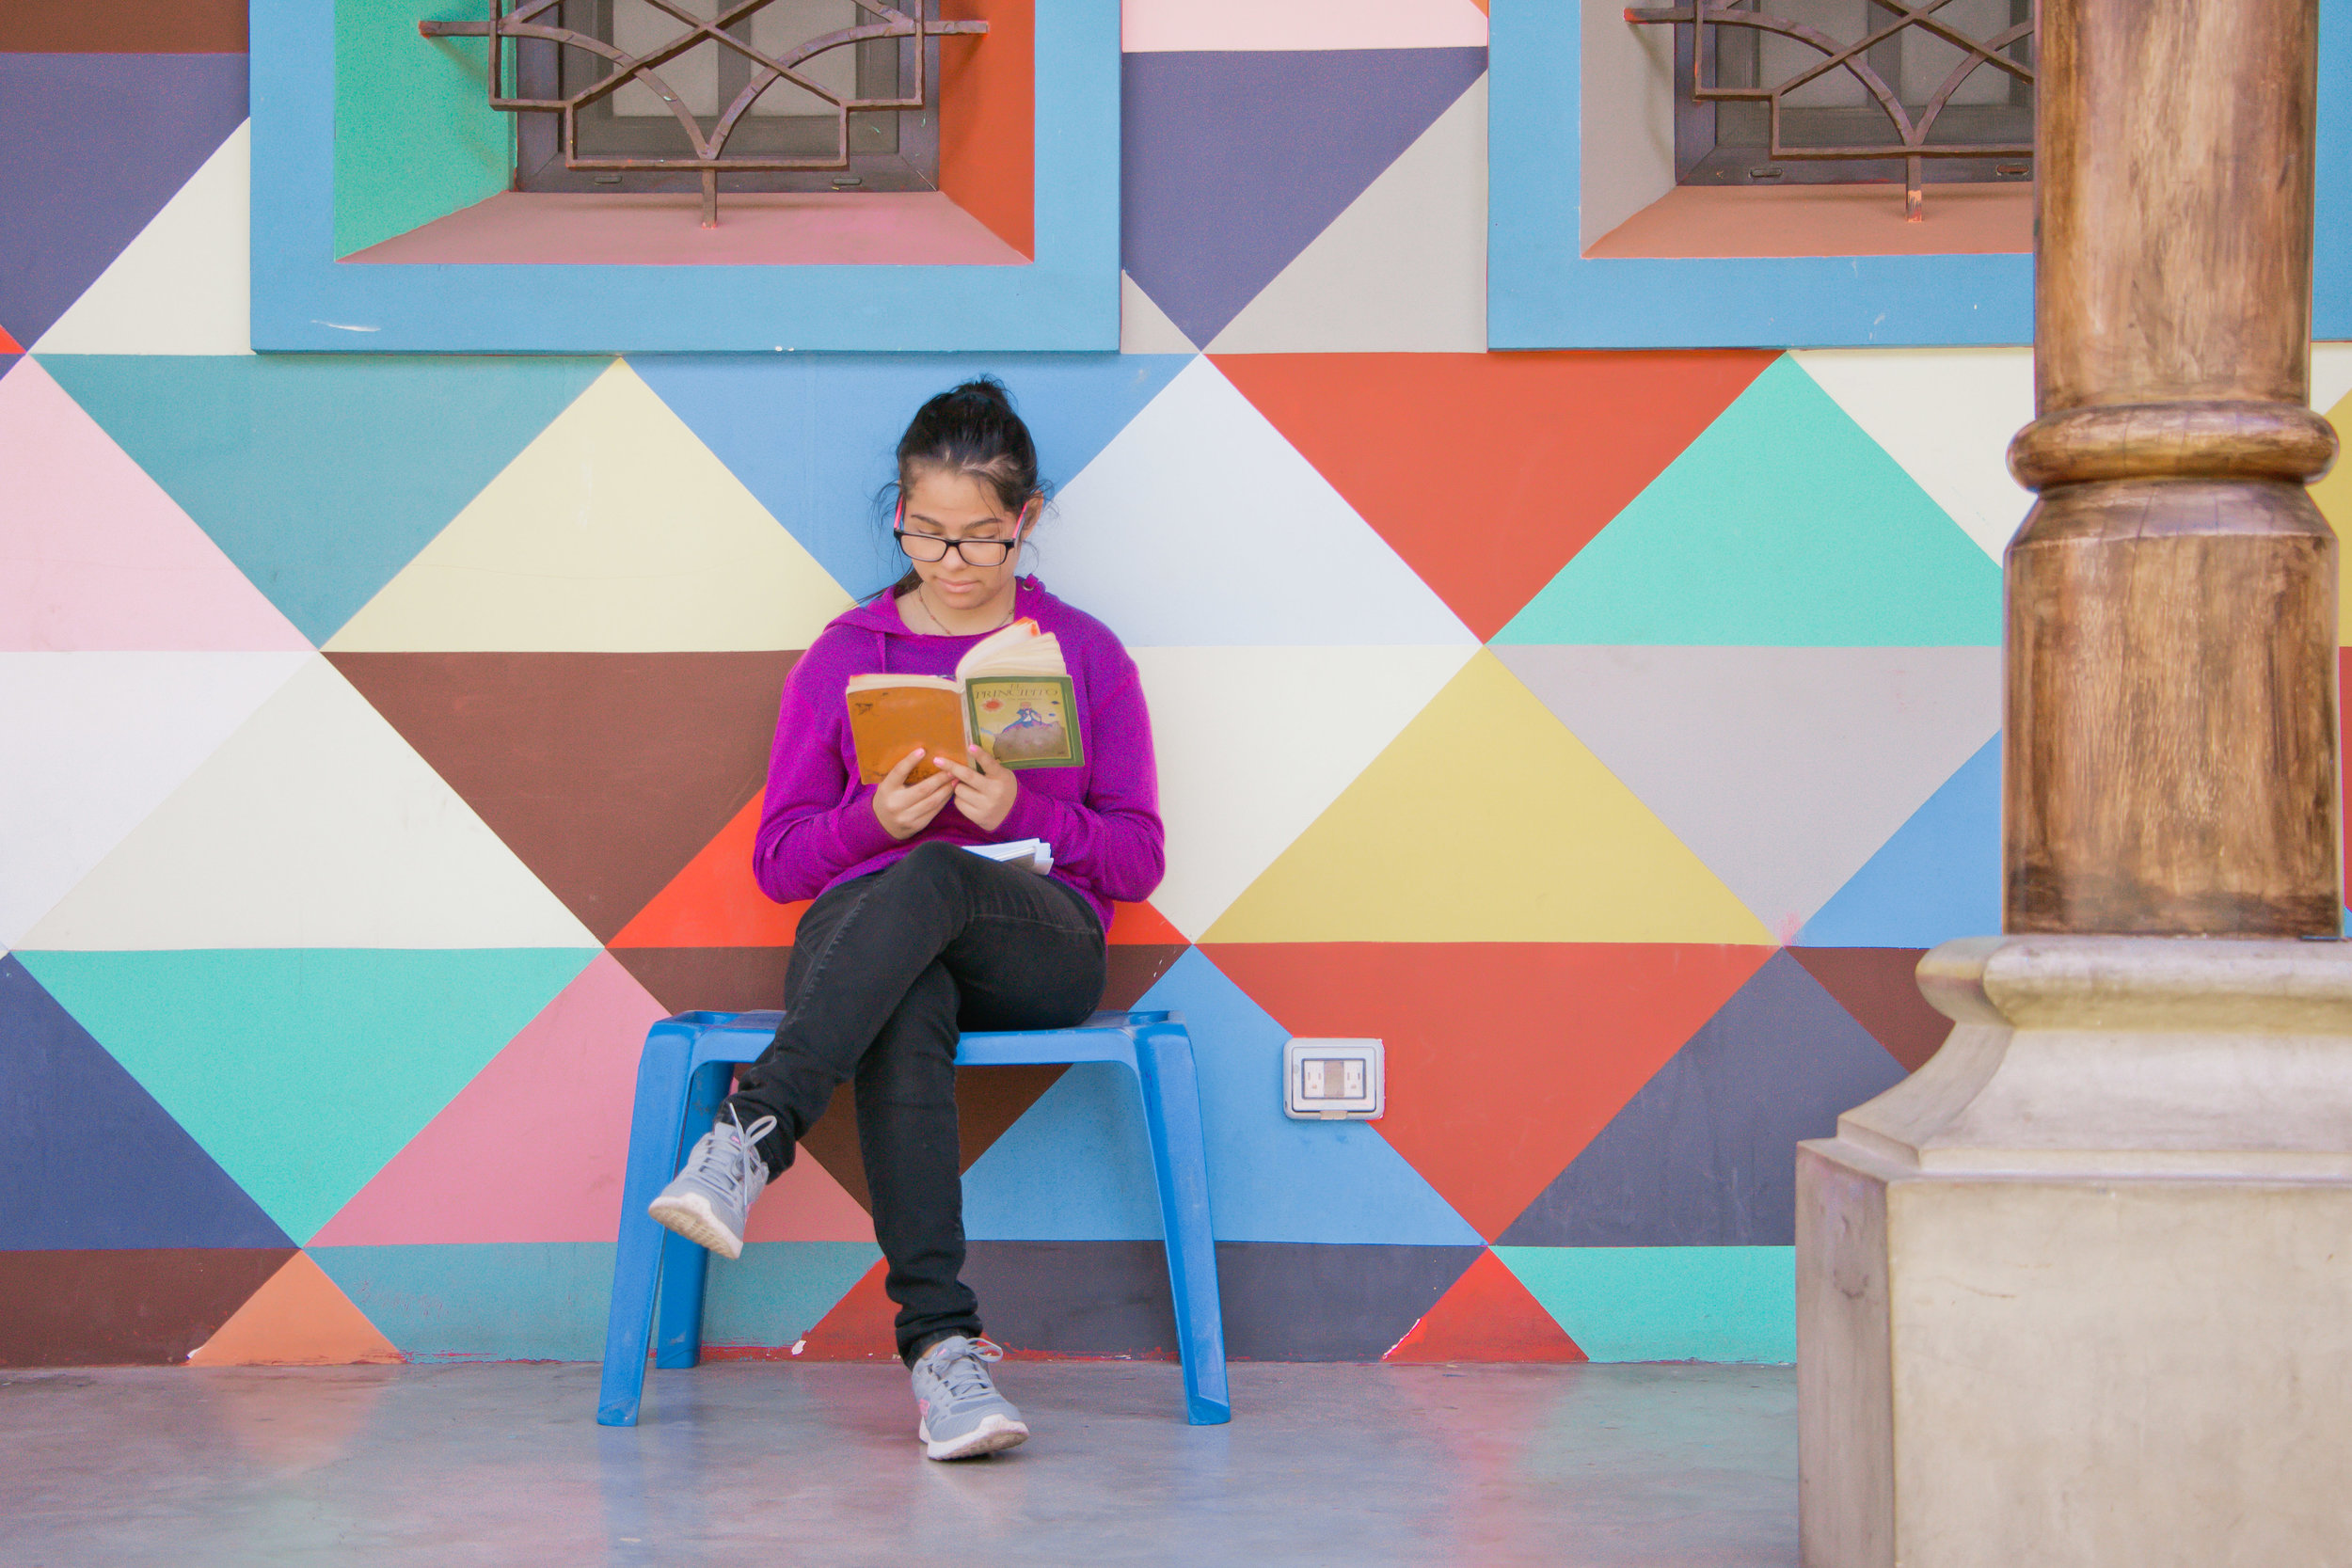 SOFÍA SITS AND READS WHILE SHE WAITS FOR HER SISTER TO ENROLL HER IN CLASSES FOR THE UPCOMING YEAR IN JOCOTENANGO, GUATEMALA ON JAN. 12. SOFÍA'S SISTER CURRENTLY WORKS AT LOS PATOJOS AS A TEACHER.